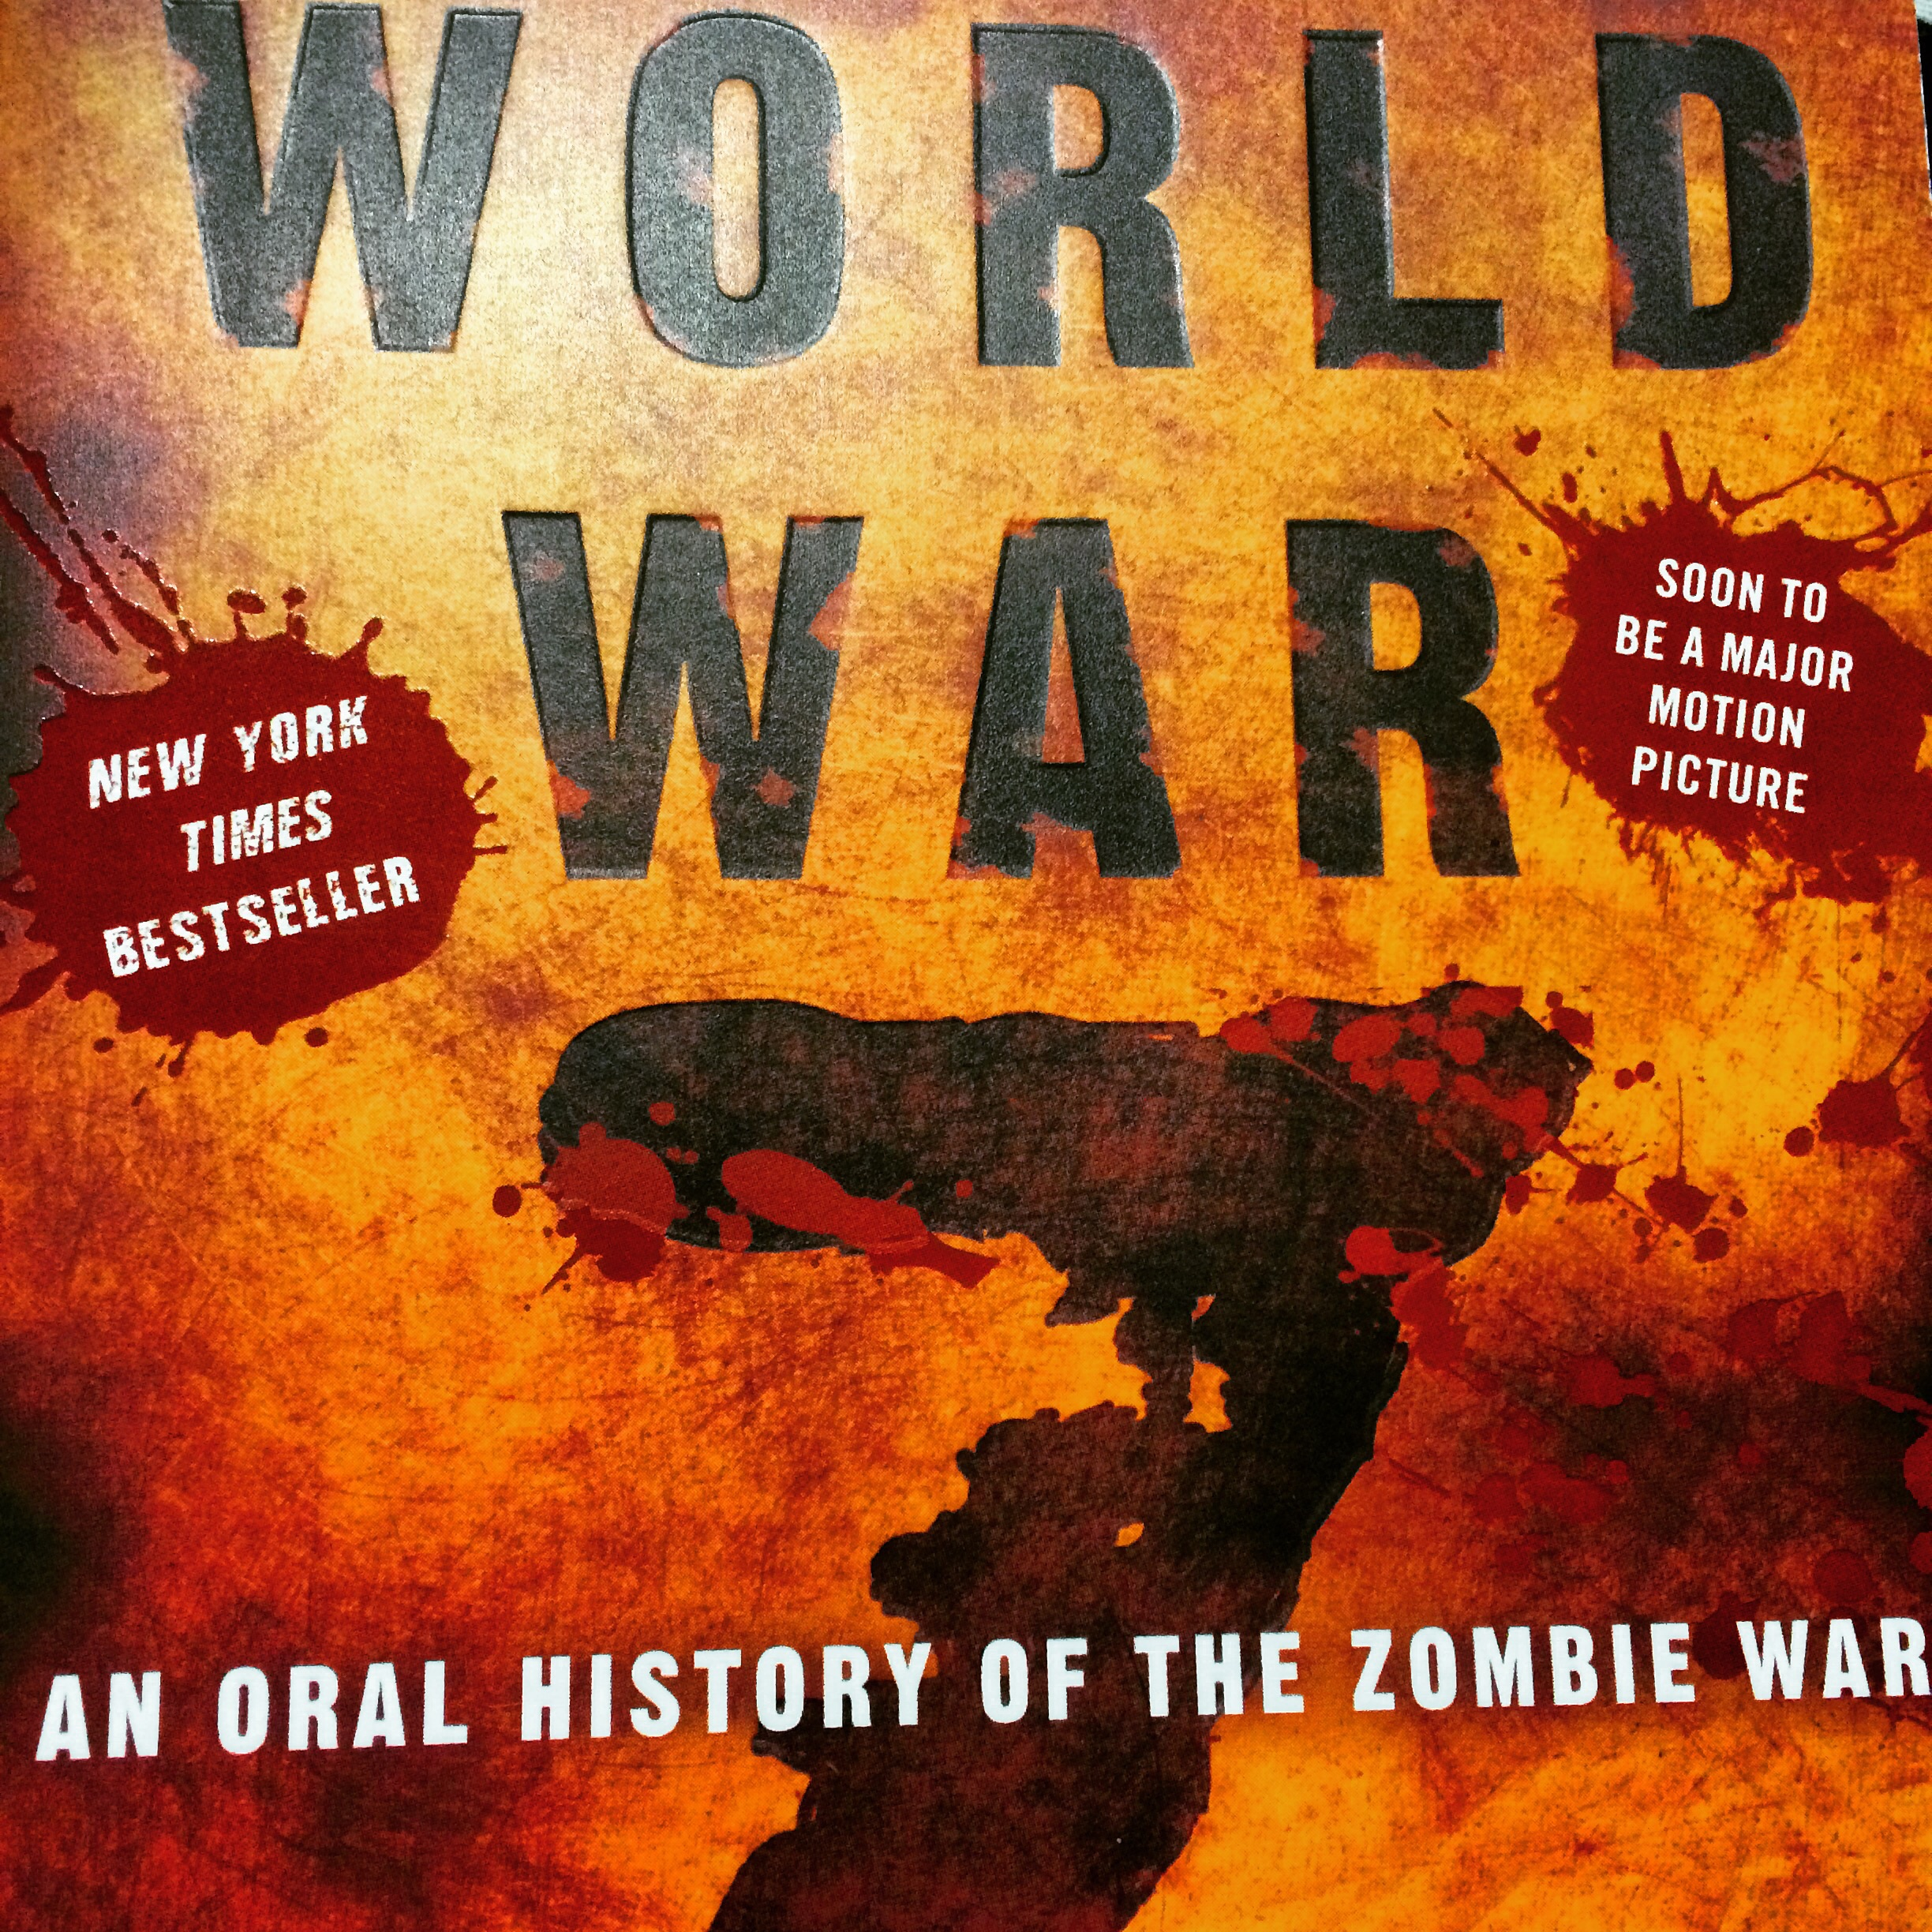 the theme of violence in the book world war z an oral history of the zombie war by max brooks And the shock value of seeing something as brutal as domestic violence case  world war z release  an oral history of the zombie war, by max brooks.